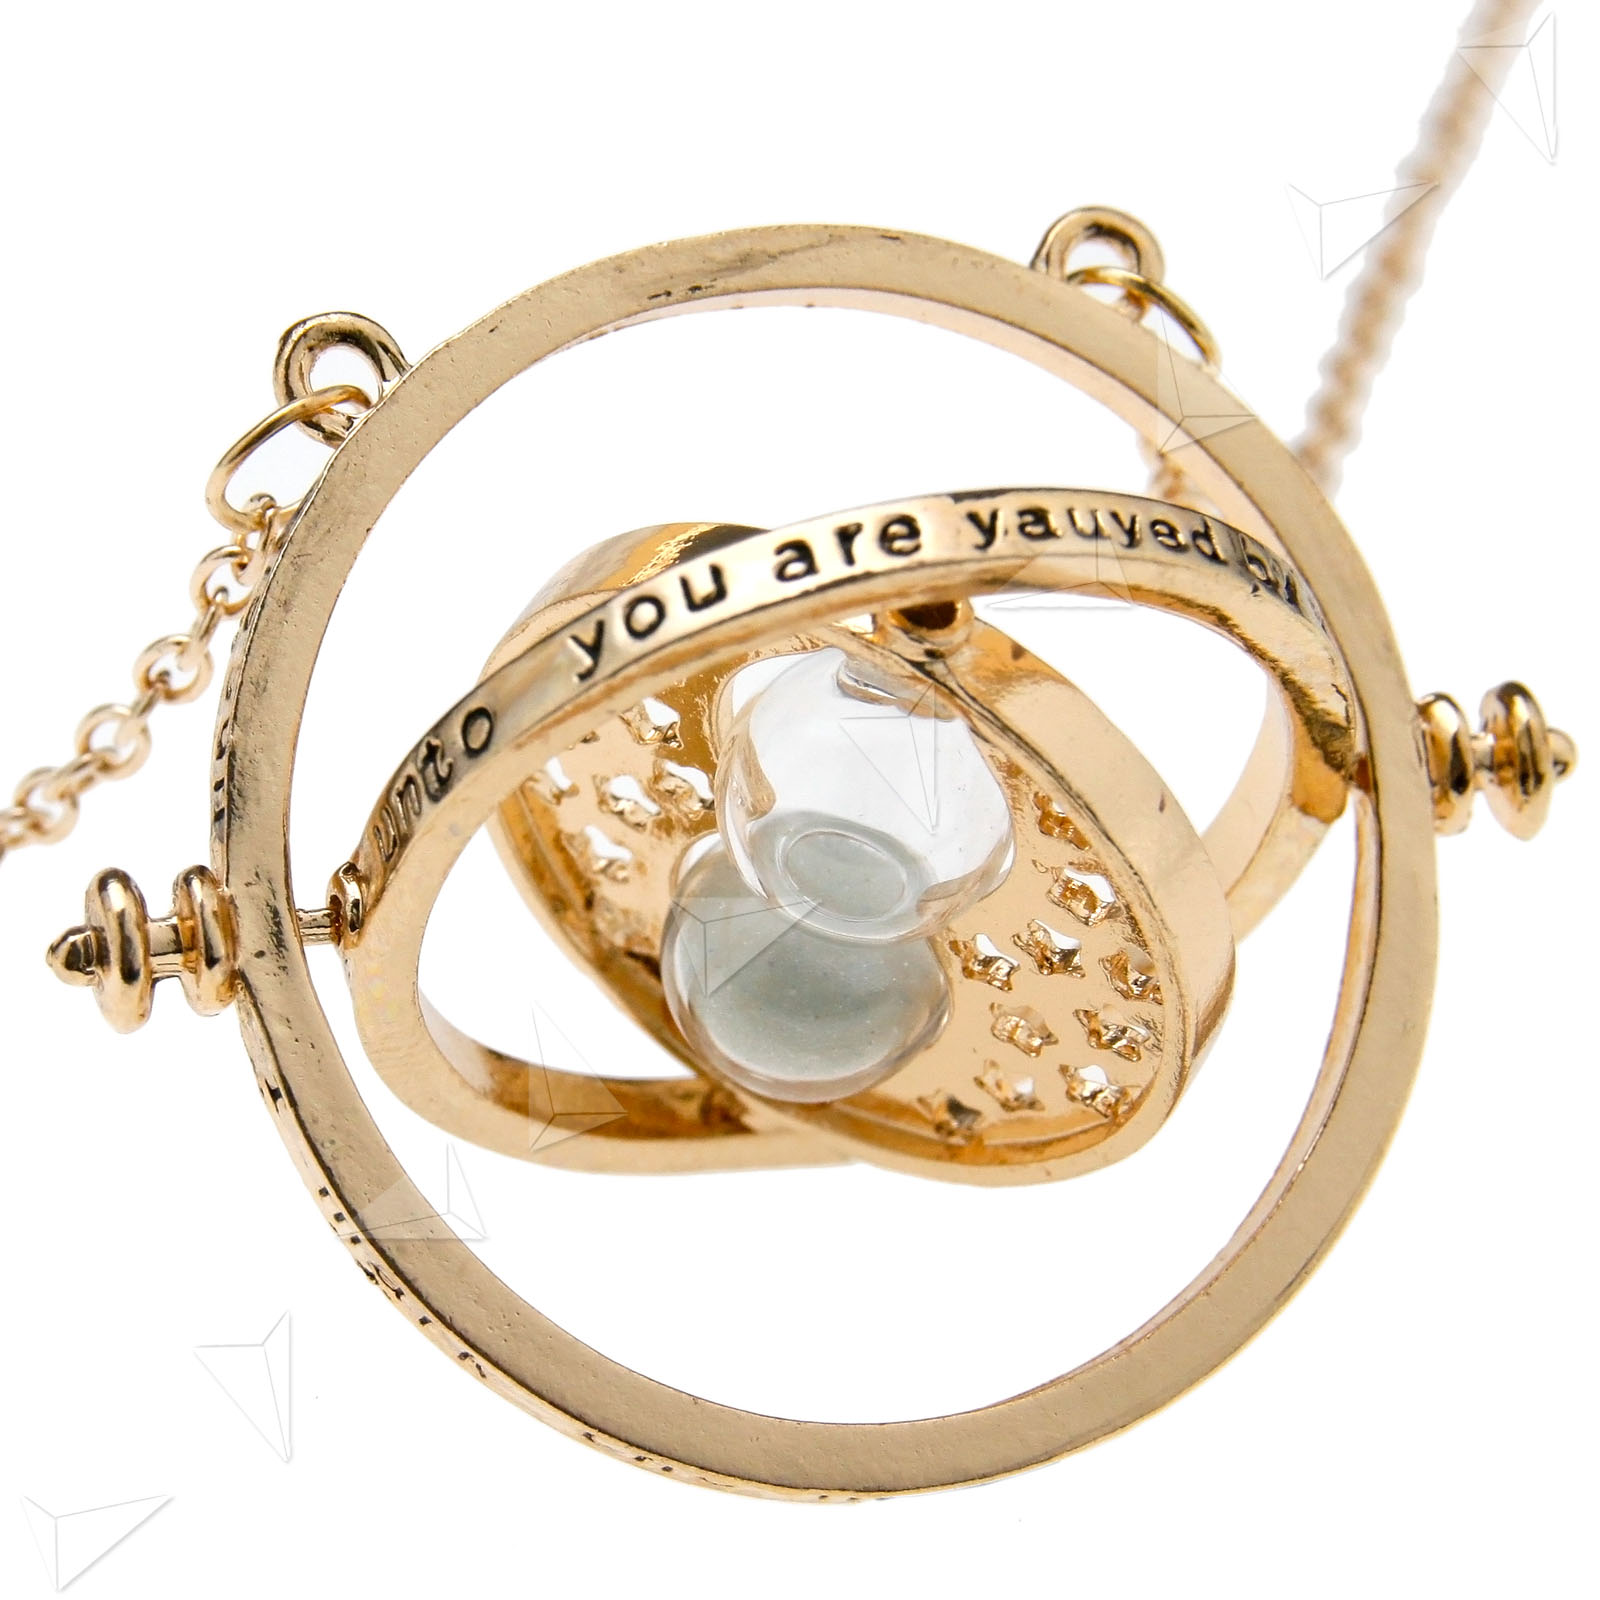 theme of the necklace